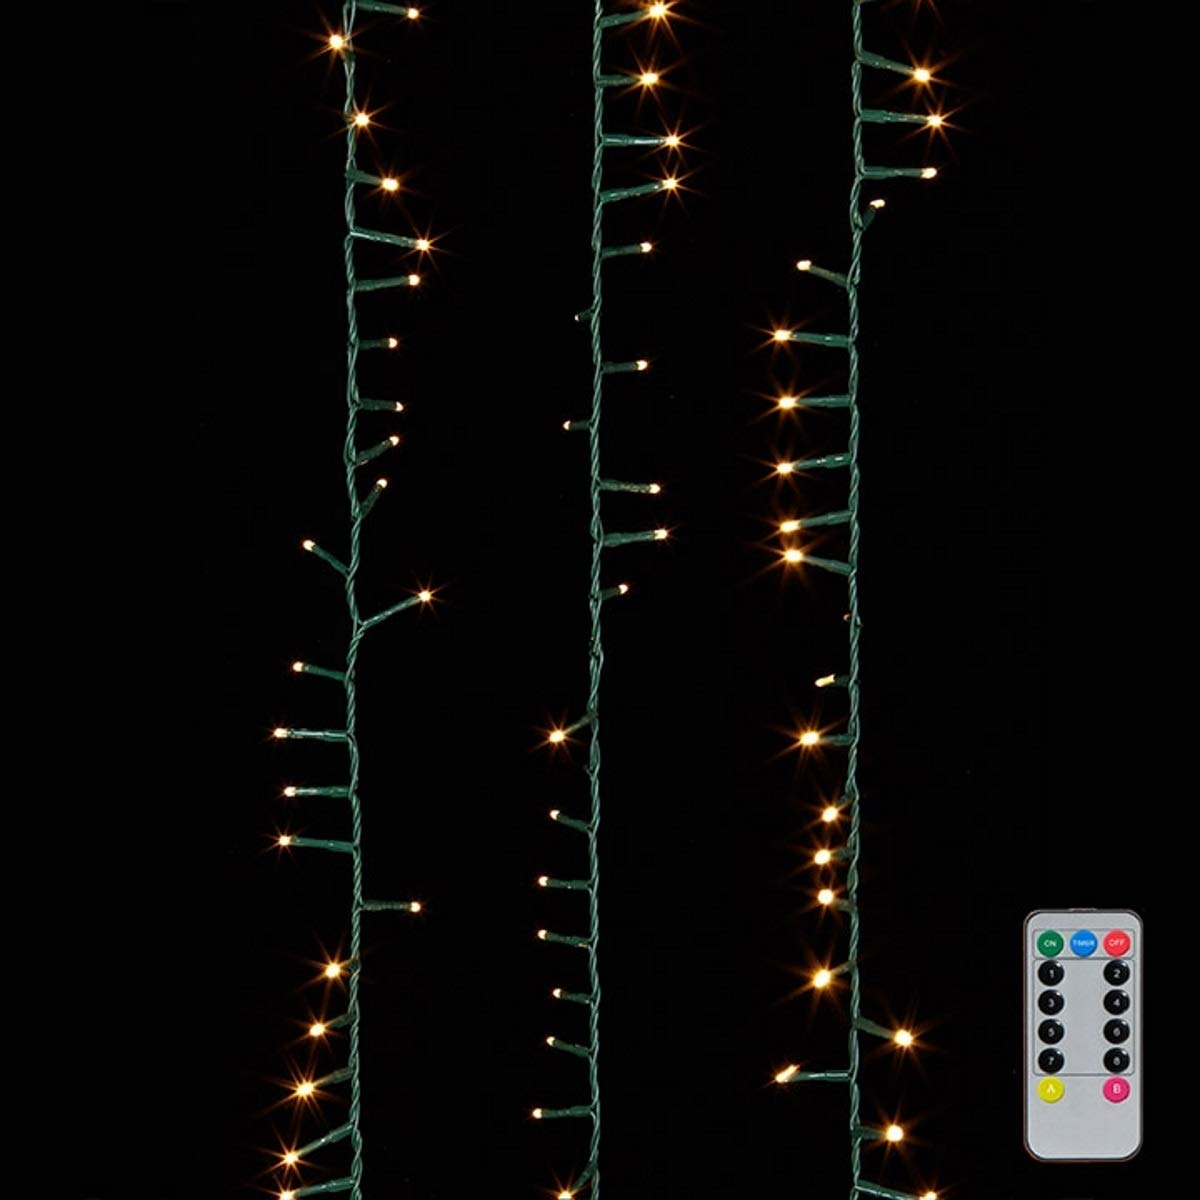 123 Foot Snake Garland 1700 Warm White LED Lights on Green Wire with Multi-function Remote